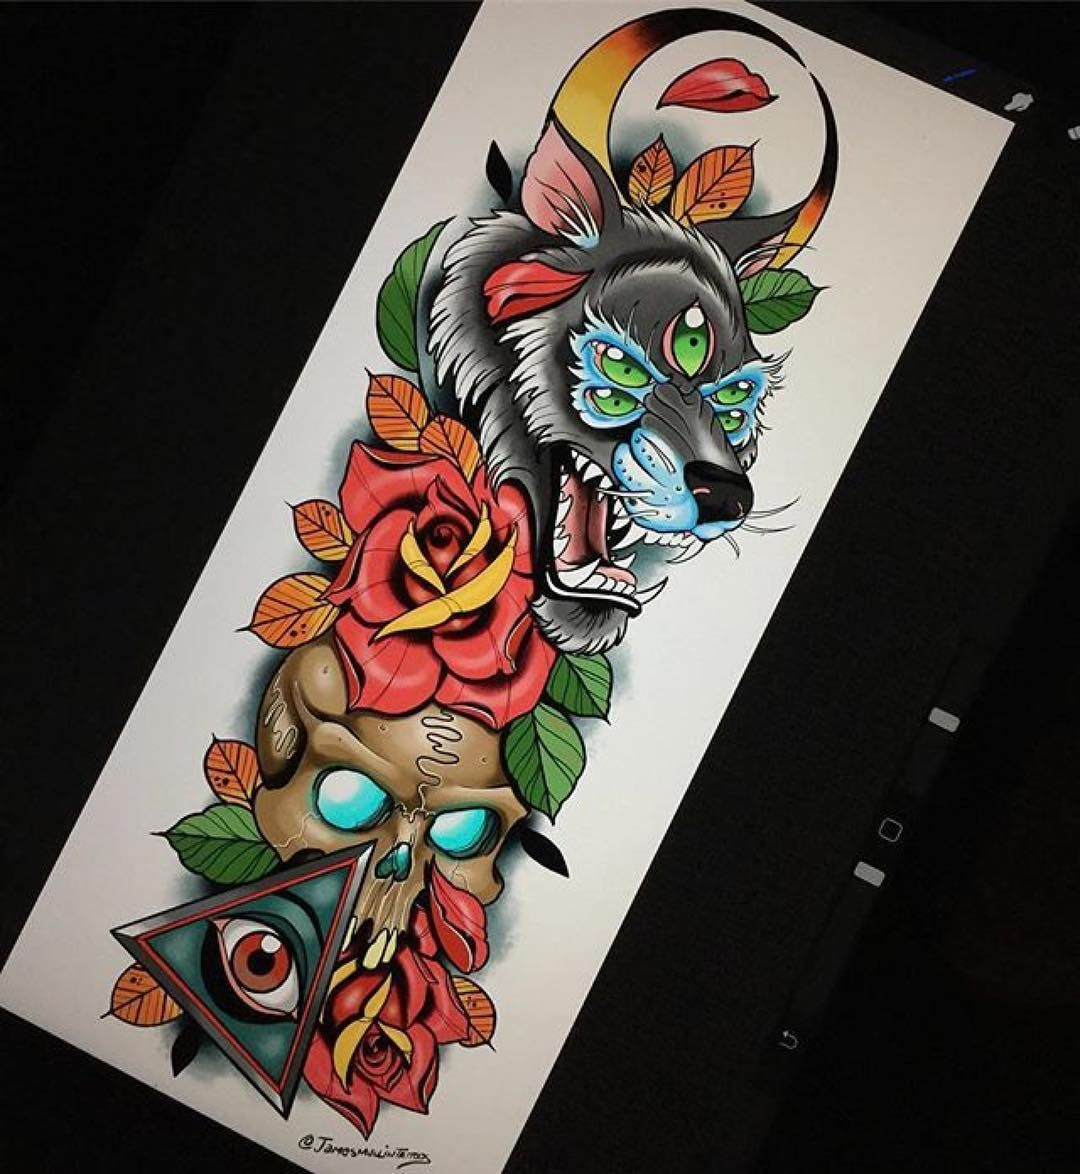 Beautiful Color Sketches For Your Tattoos Beattattoo Com Ink People Sketches Tattoo Inked Women Design Sleeve Tattoo Sak Yant Magic Tattoo Colored Tattoo Design Traditional Tattoo Art Traditional Tattoo Sleeve